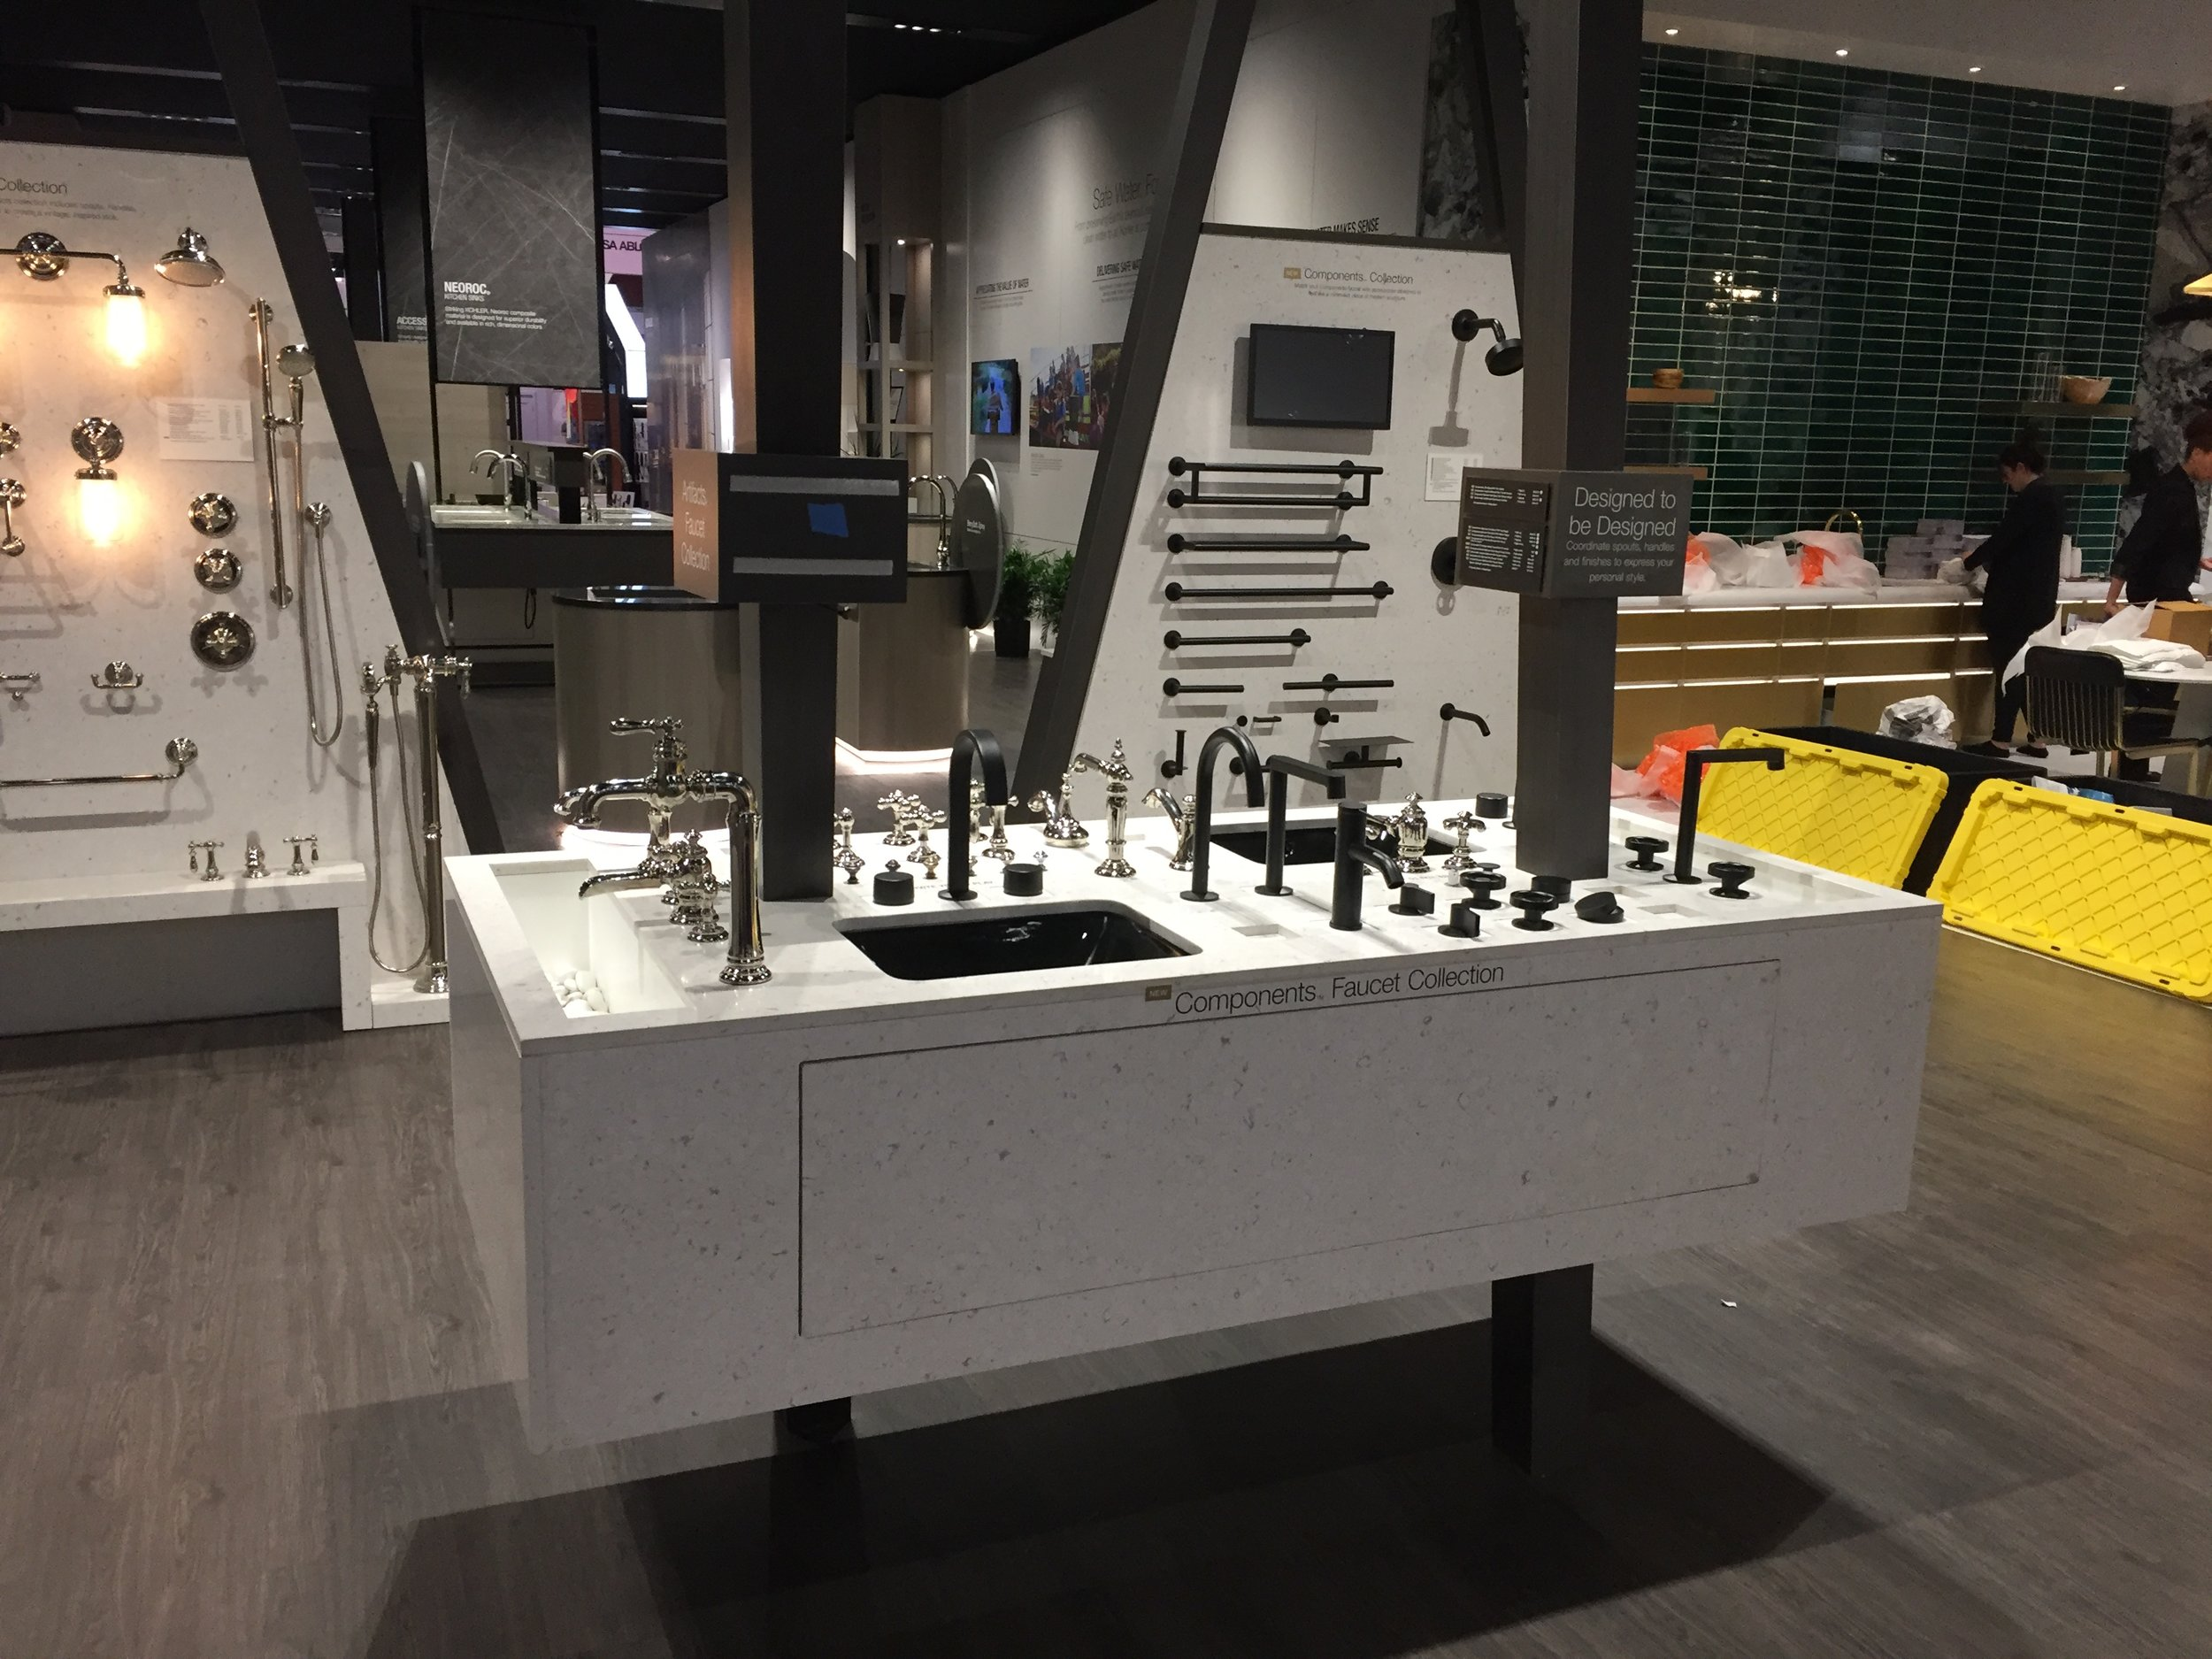 Kohler KBIS Faucet Trade Show Display